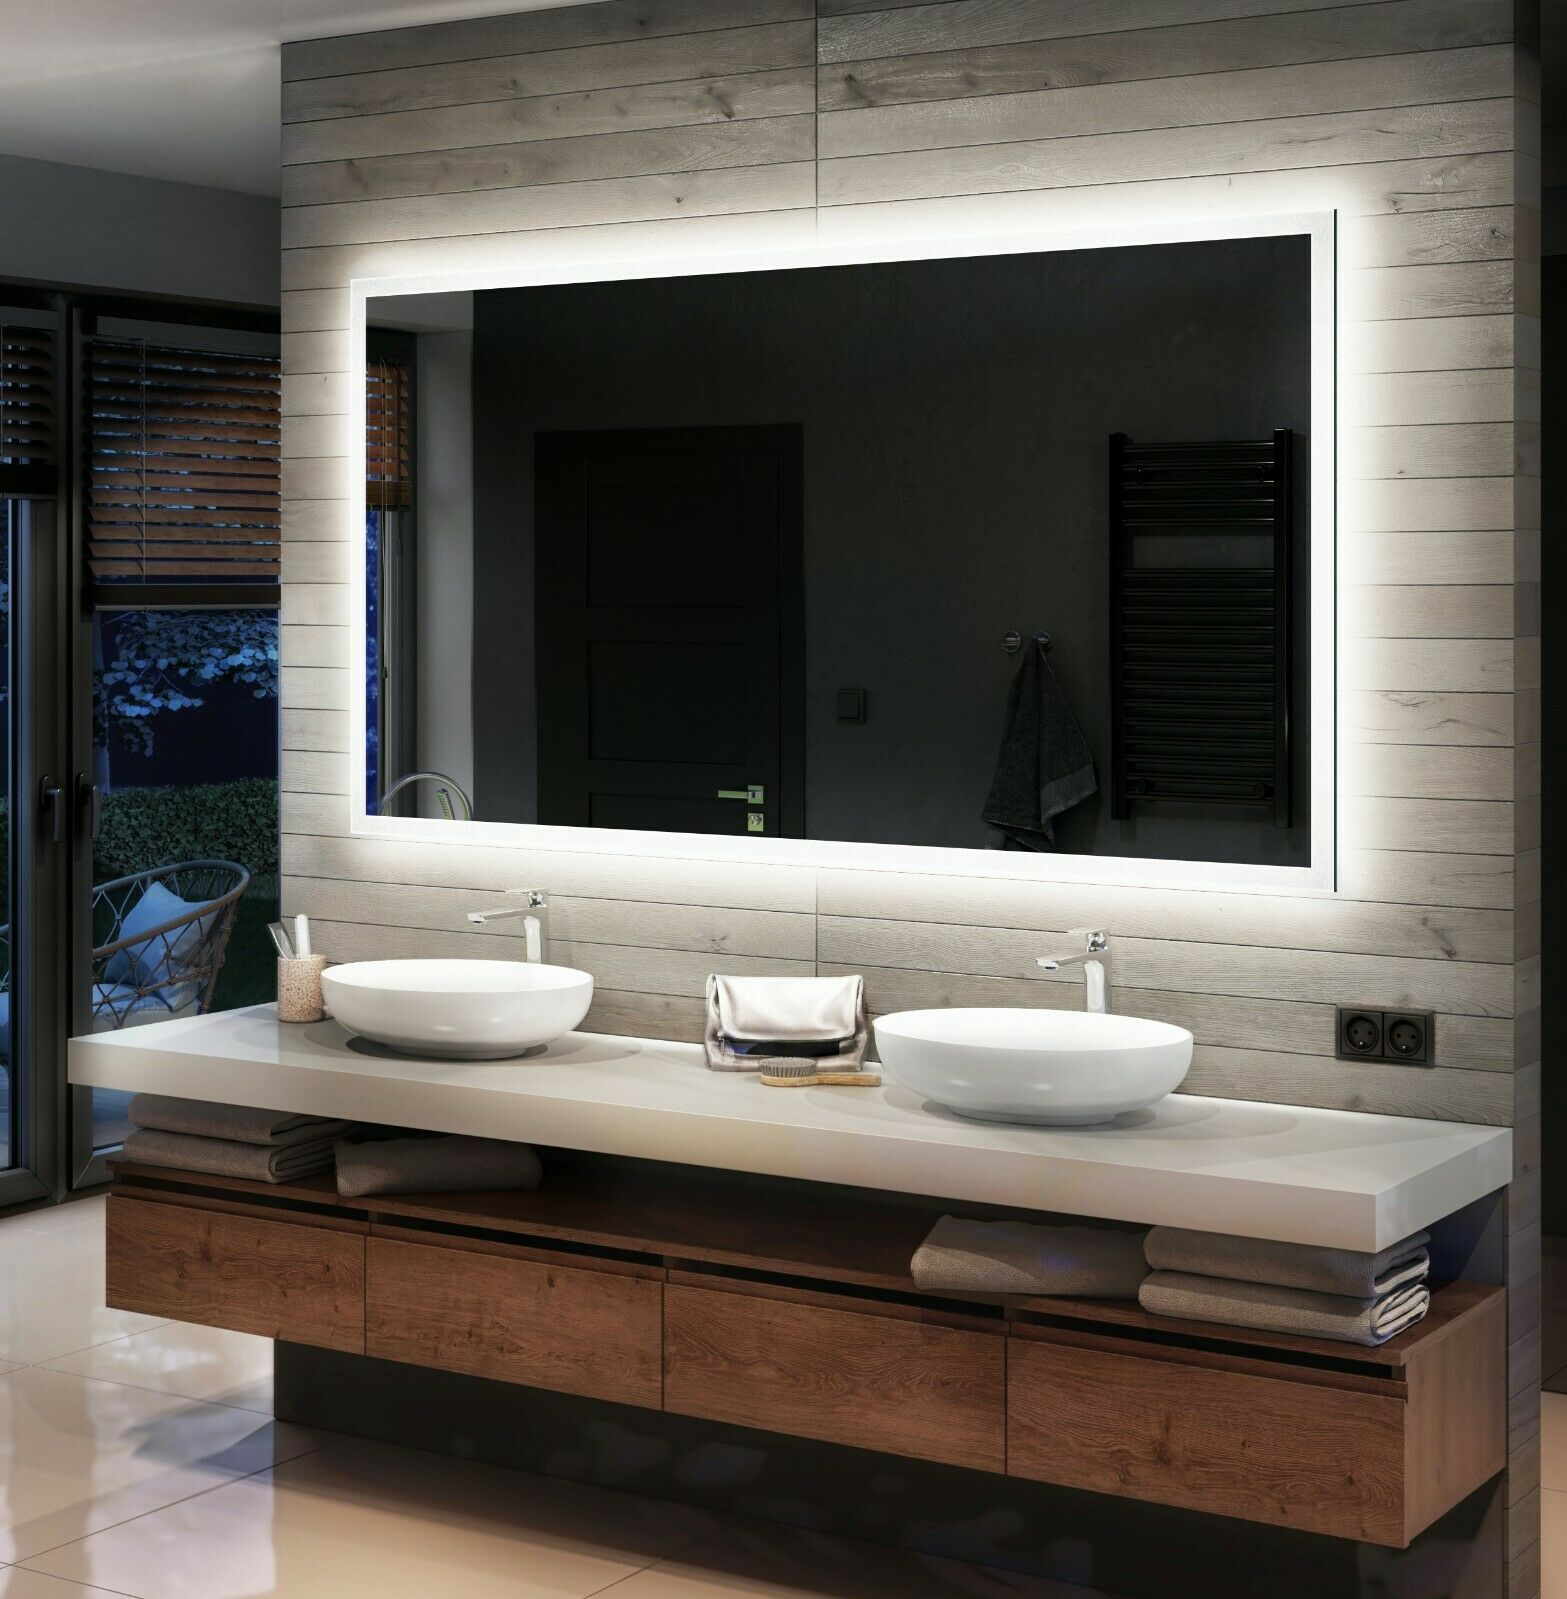 beau miroir salle de bain lumineux led sur mesure l01 eur 75 00 picclick fr. Black Bedroom Furniture Sets. Home Design Ideas